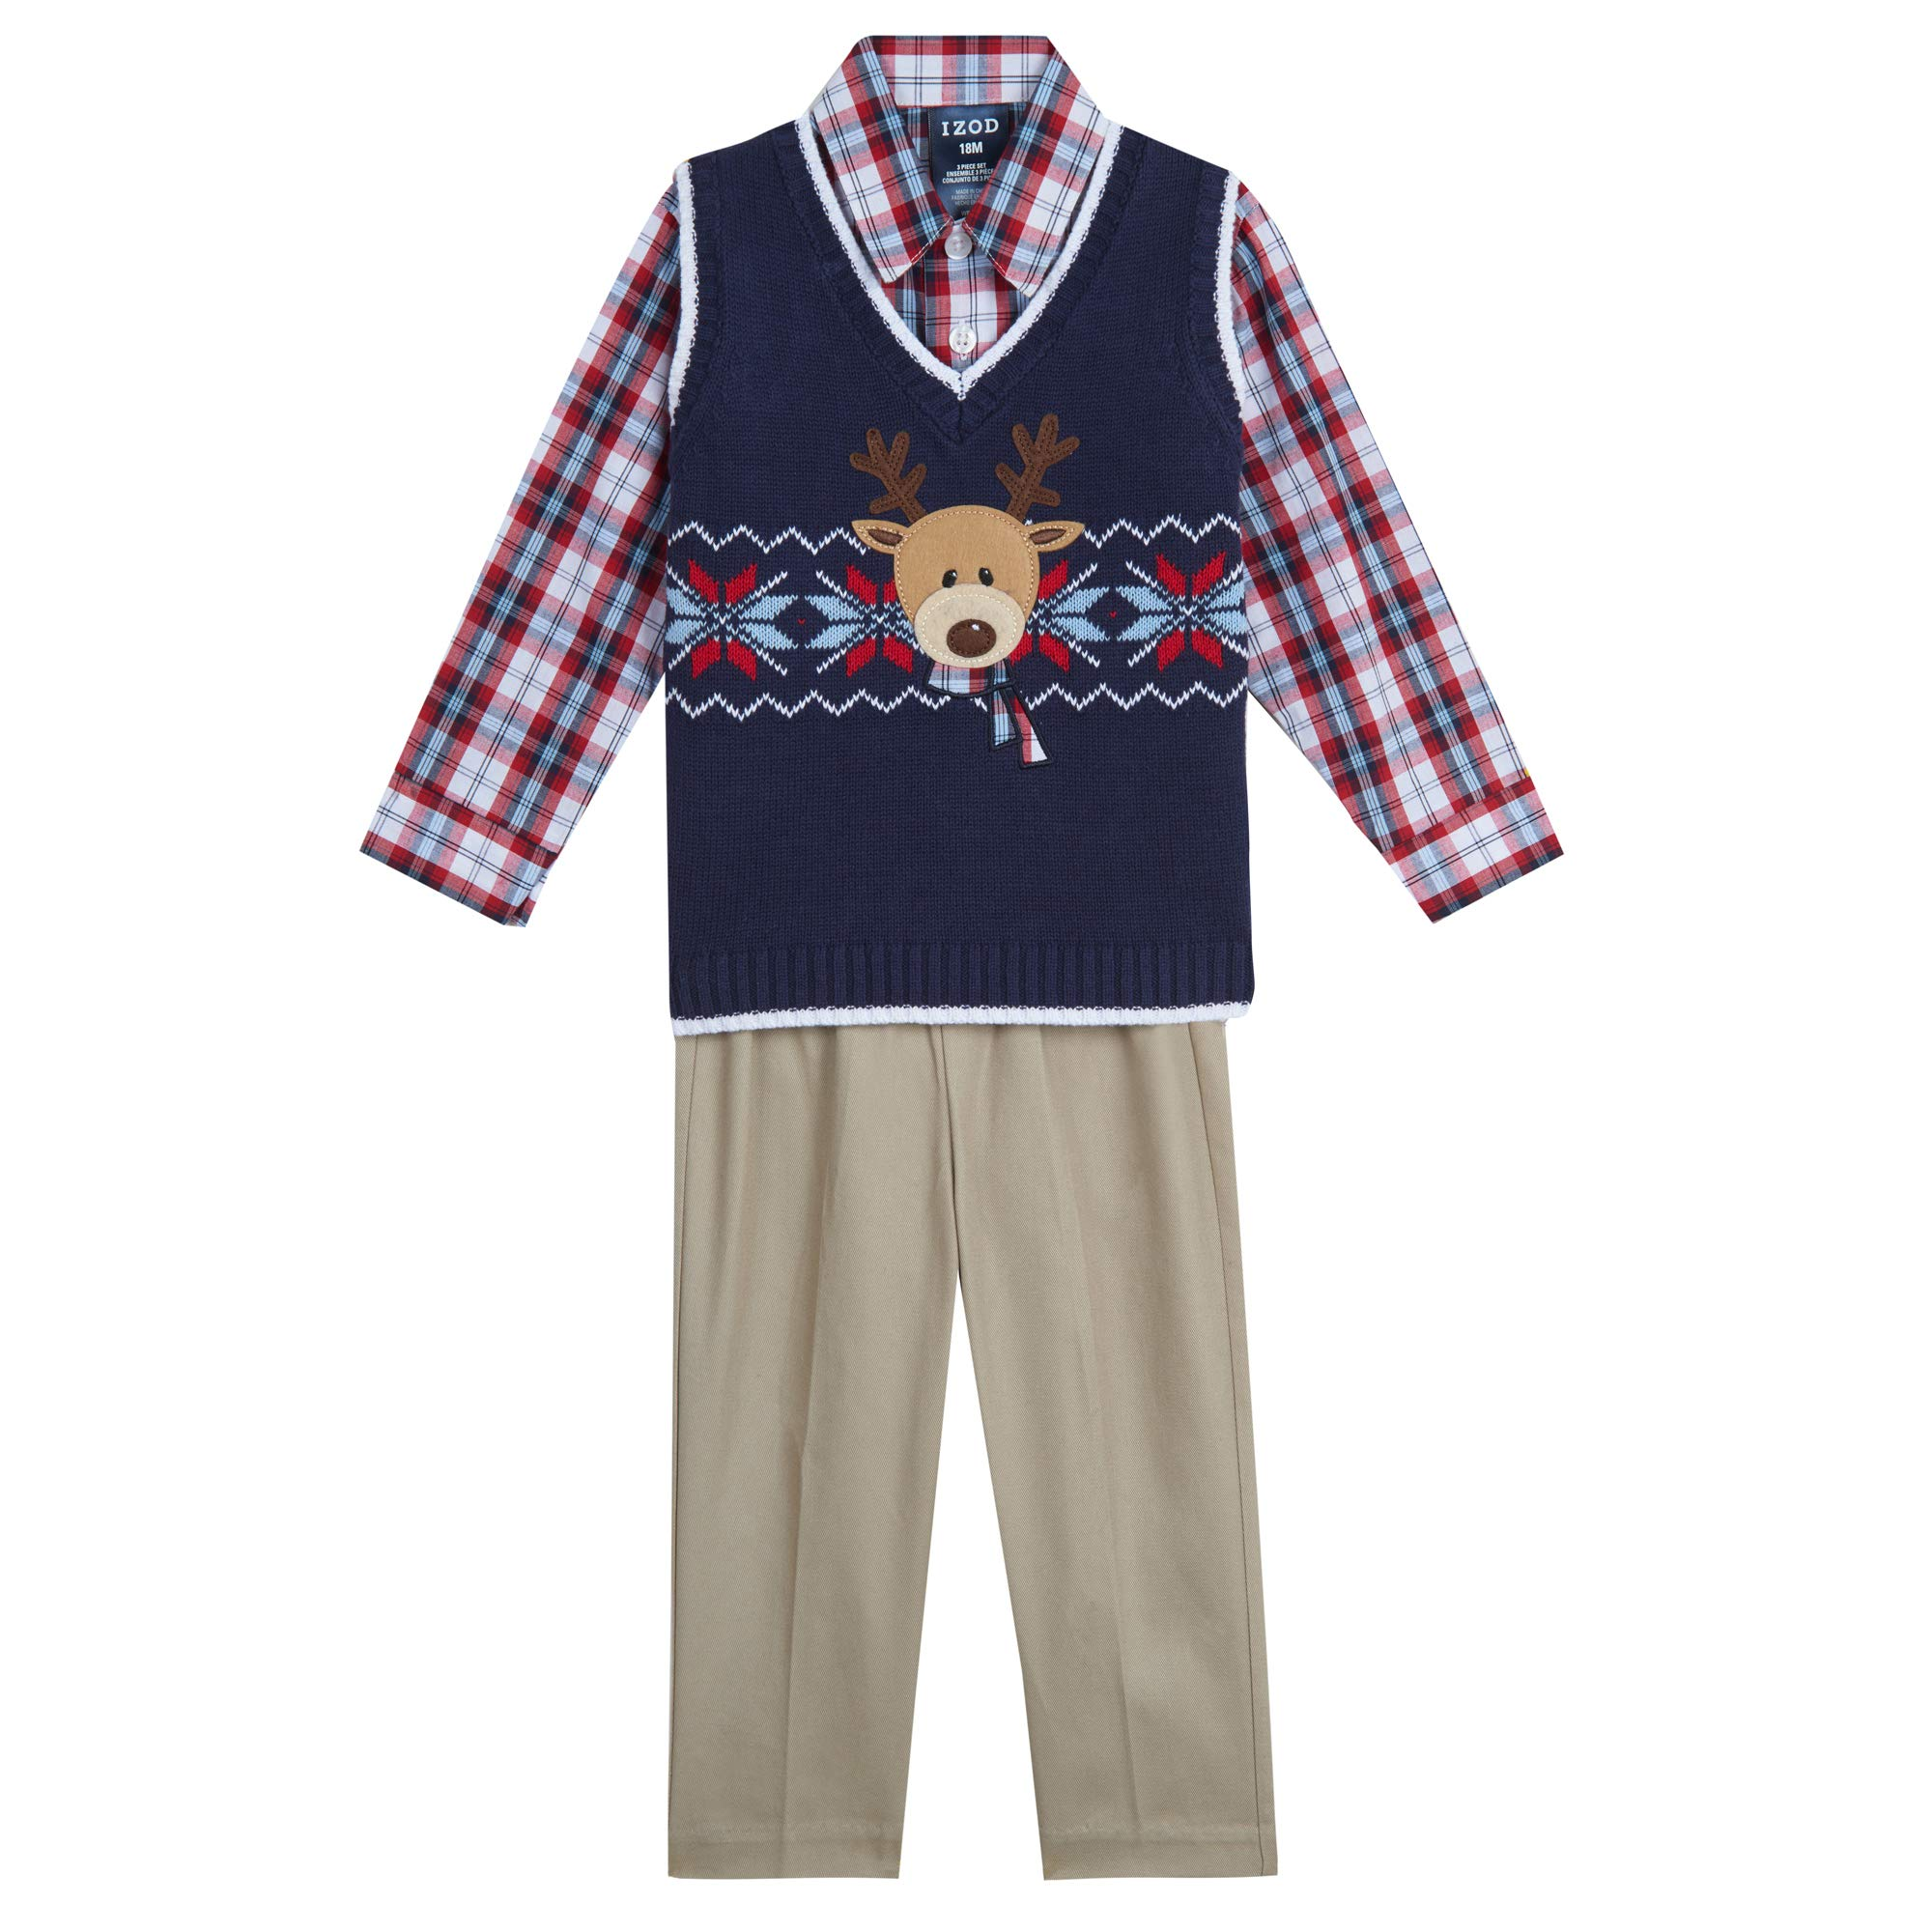 Izod Baby Boys 3-Piece Sweater Vest, Dress Shirt, and Pants Set